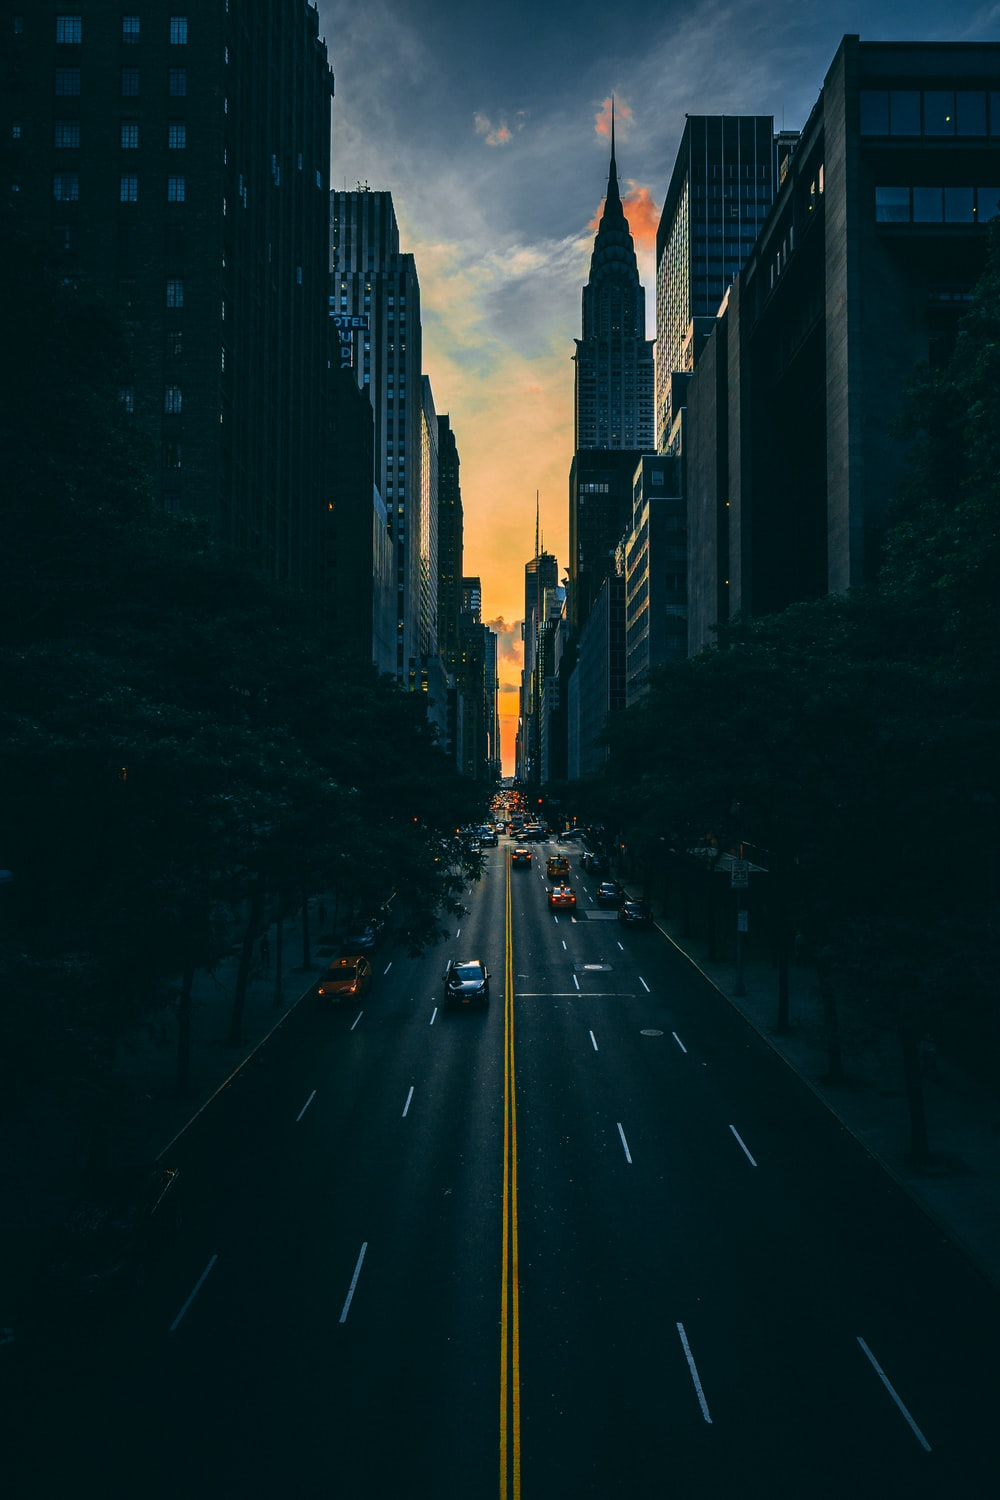 low light photography of vehicle crossing road between high-rise buildings